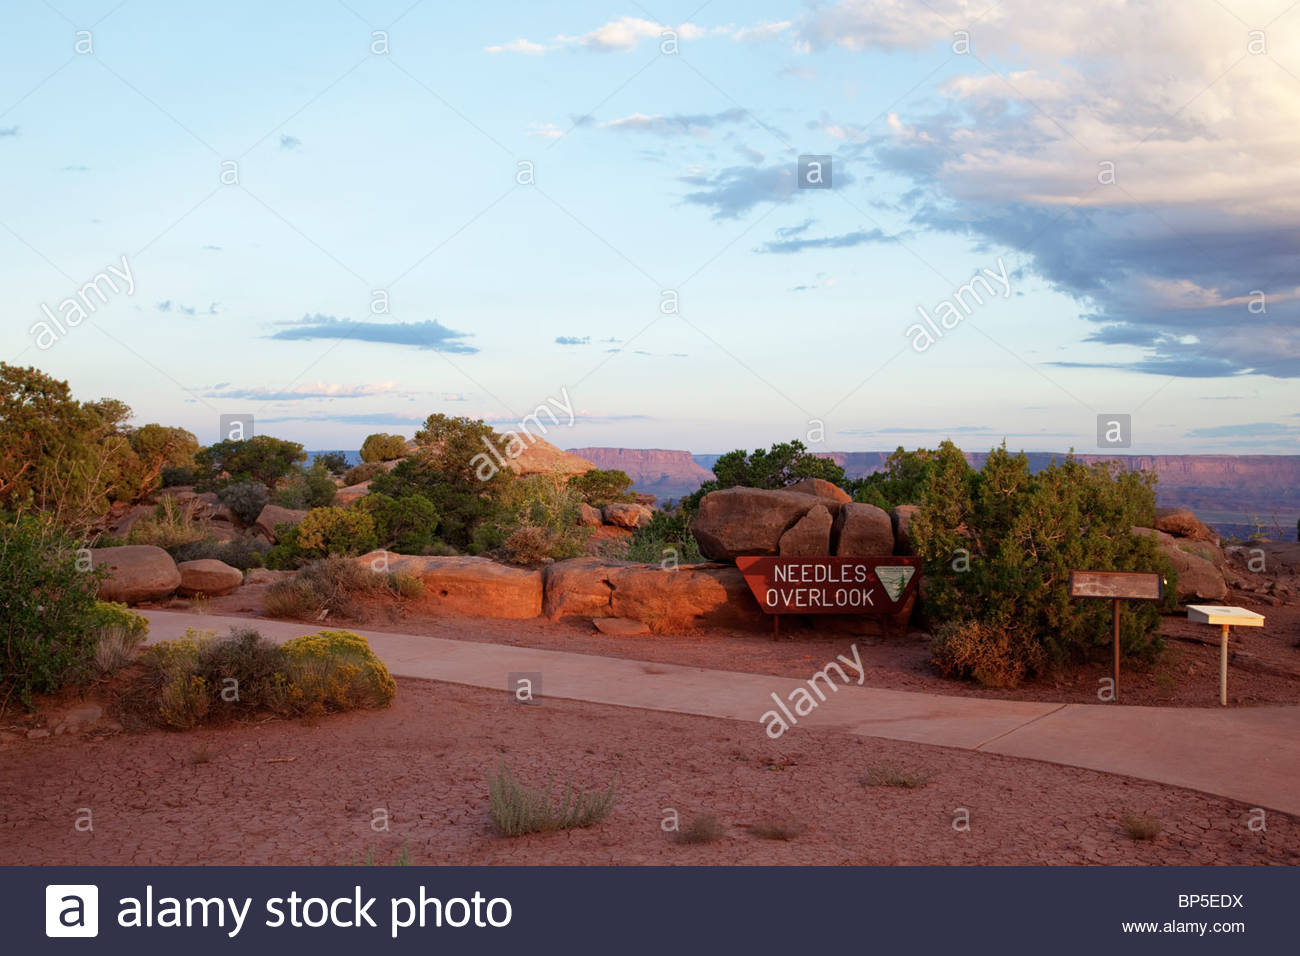 Needles Overlook BLM Canyonlands Area southeastern Utah Bureau of Land Management sign - Stock Image